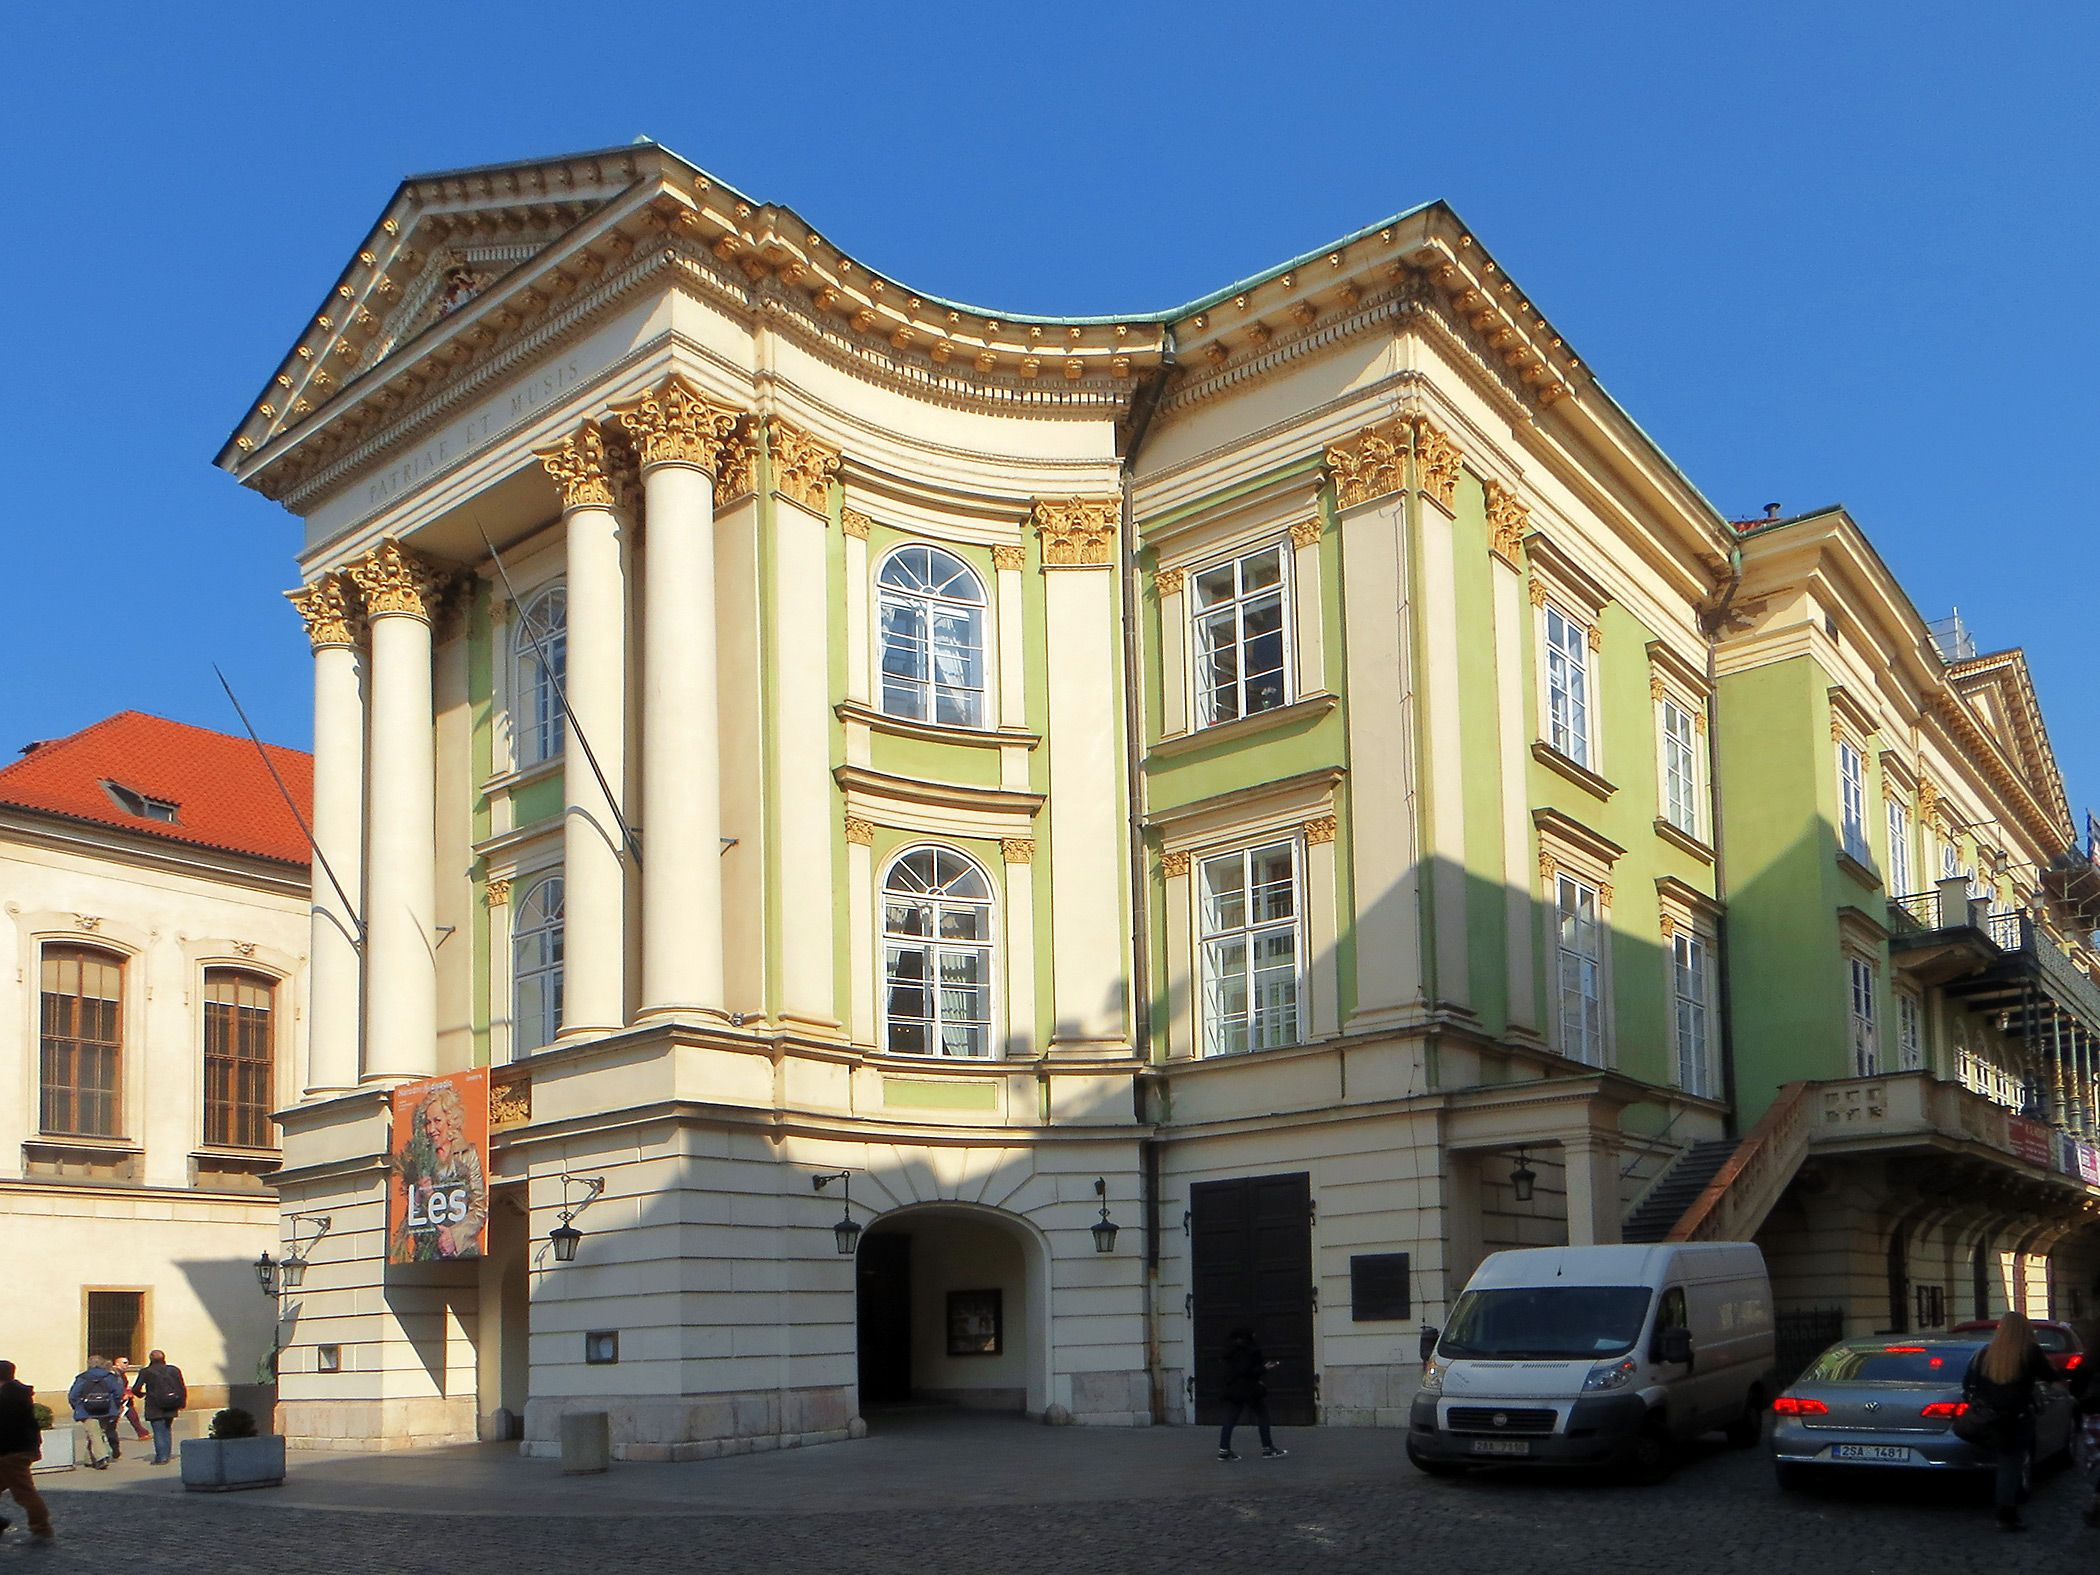 The Estates Theatre is a historic theatre in Prague, Czech Republic